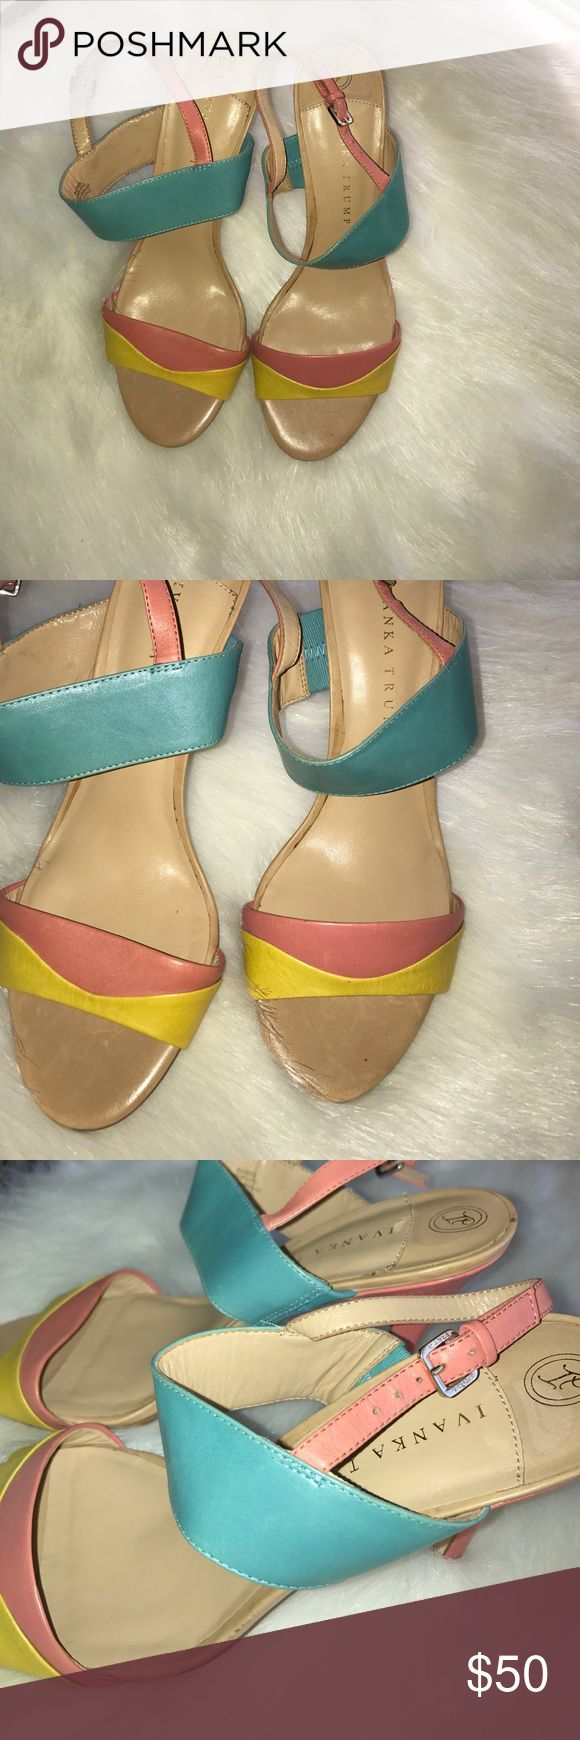 "Summer Sale‼️Ivanka Trump Colorblock Heels Contemporary curves creates modern edge on a two-strap sandal set atop a wrapped heel.Adjustable strap with buckle closure. Approx. heel height: 4"". Leather upper/synthetic lining and sole. Ivanka Trump Shoes Heels"